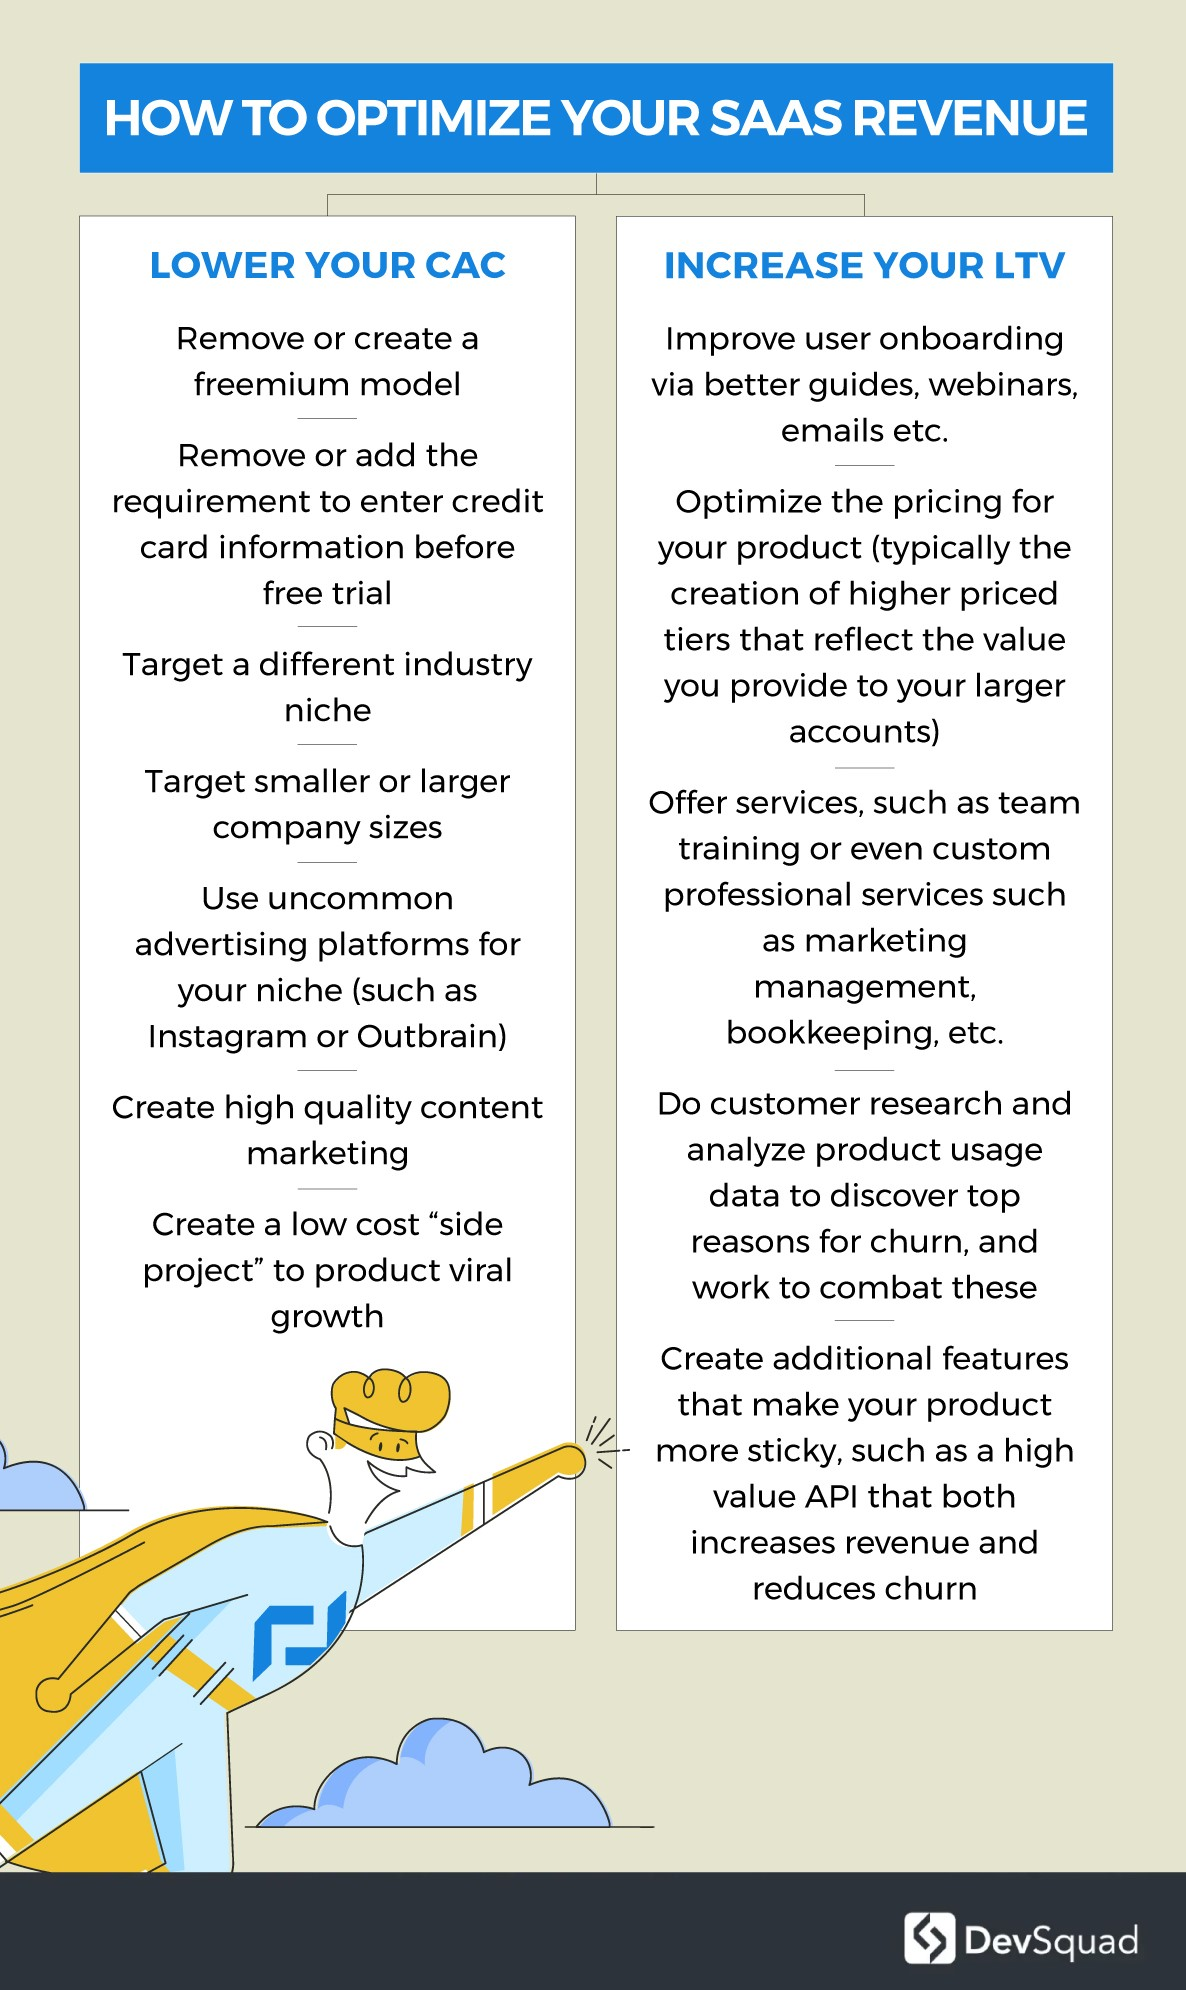 DevSquad Infographic SaaS Business Model v1 how to optimize saas revenue